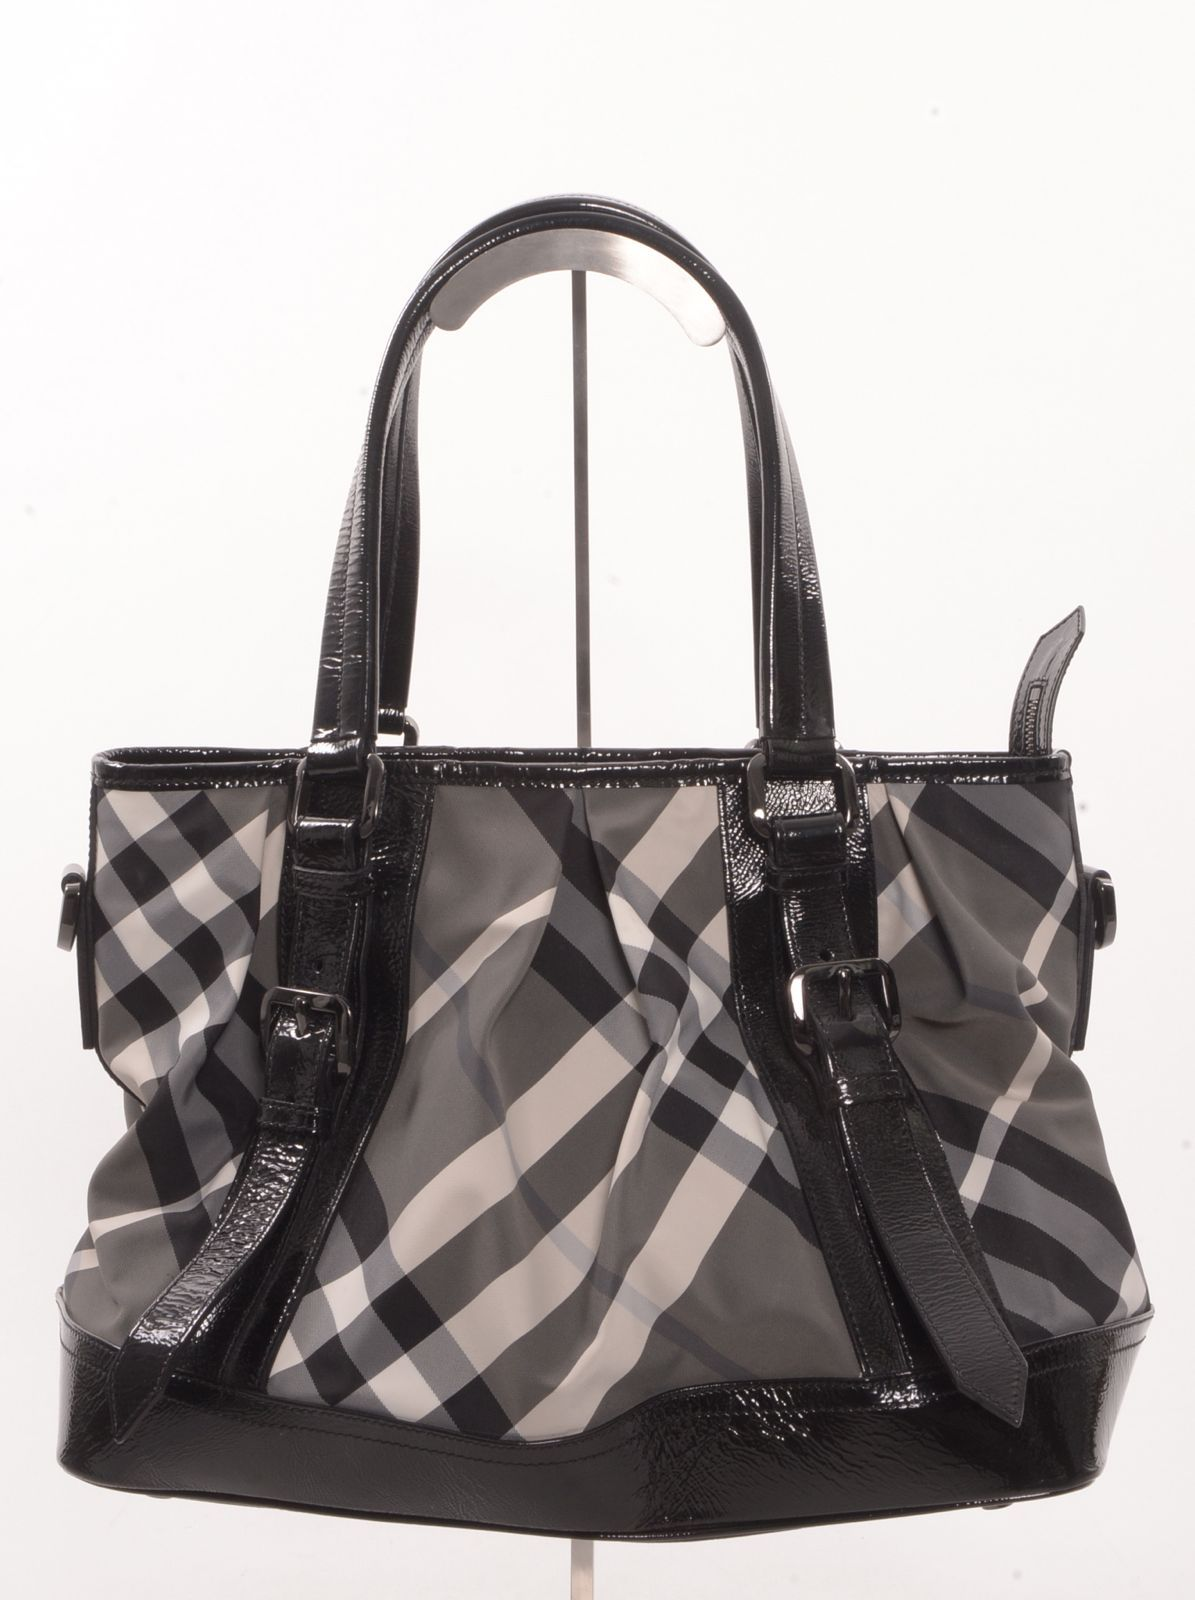 a8b1eba2d412 Authentic Burberry Black Patent Leather   Gray Nova Large Tote Price    575.00 100% Guaranteed